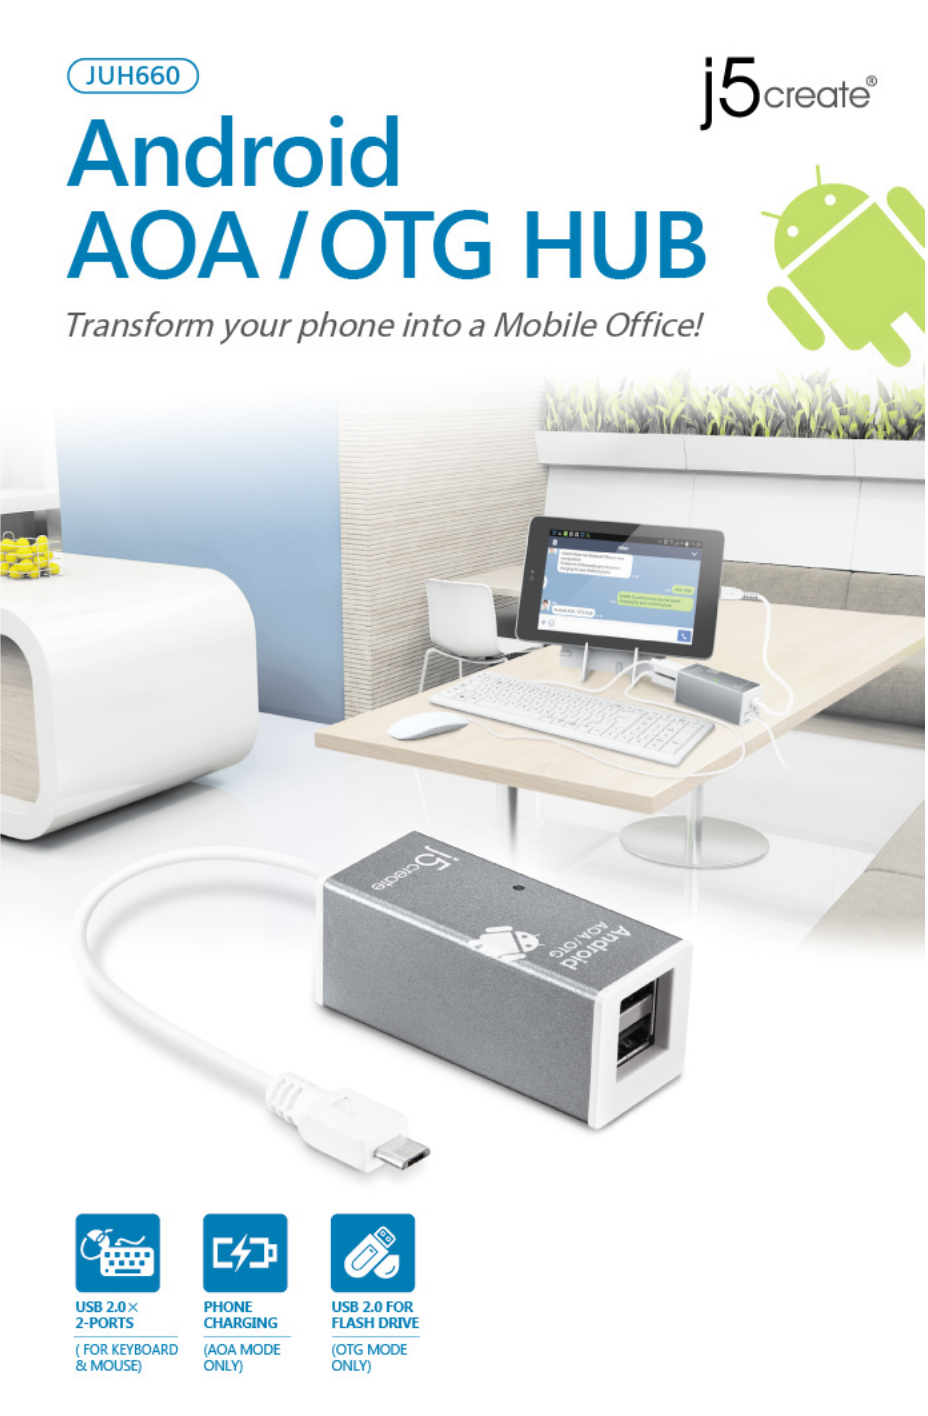 JUH660 Android AOA / OTG HUB | OTG (On The Go) | Tablet